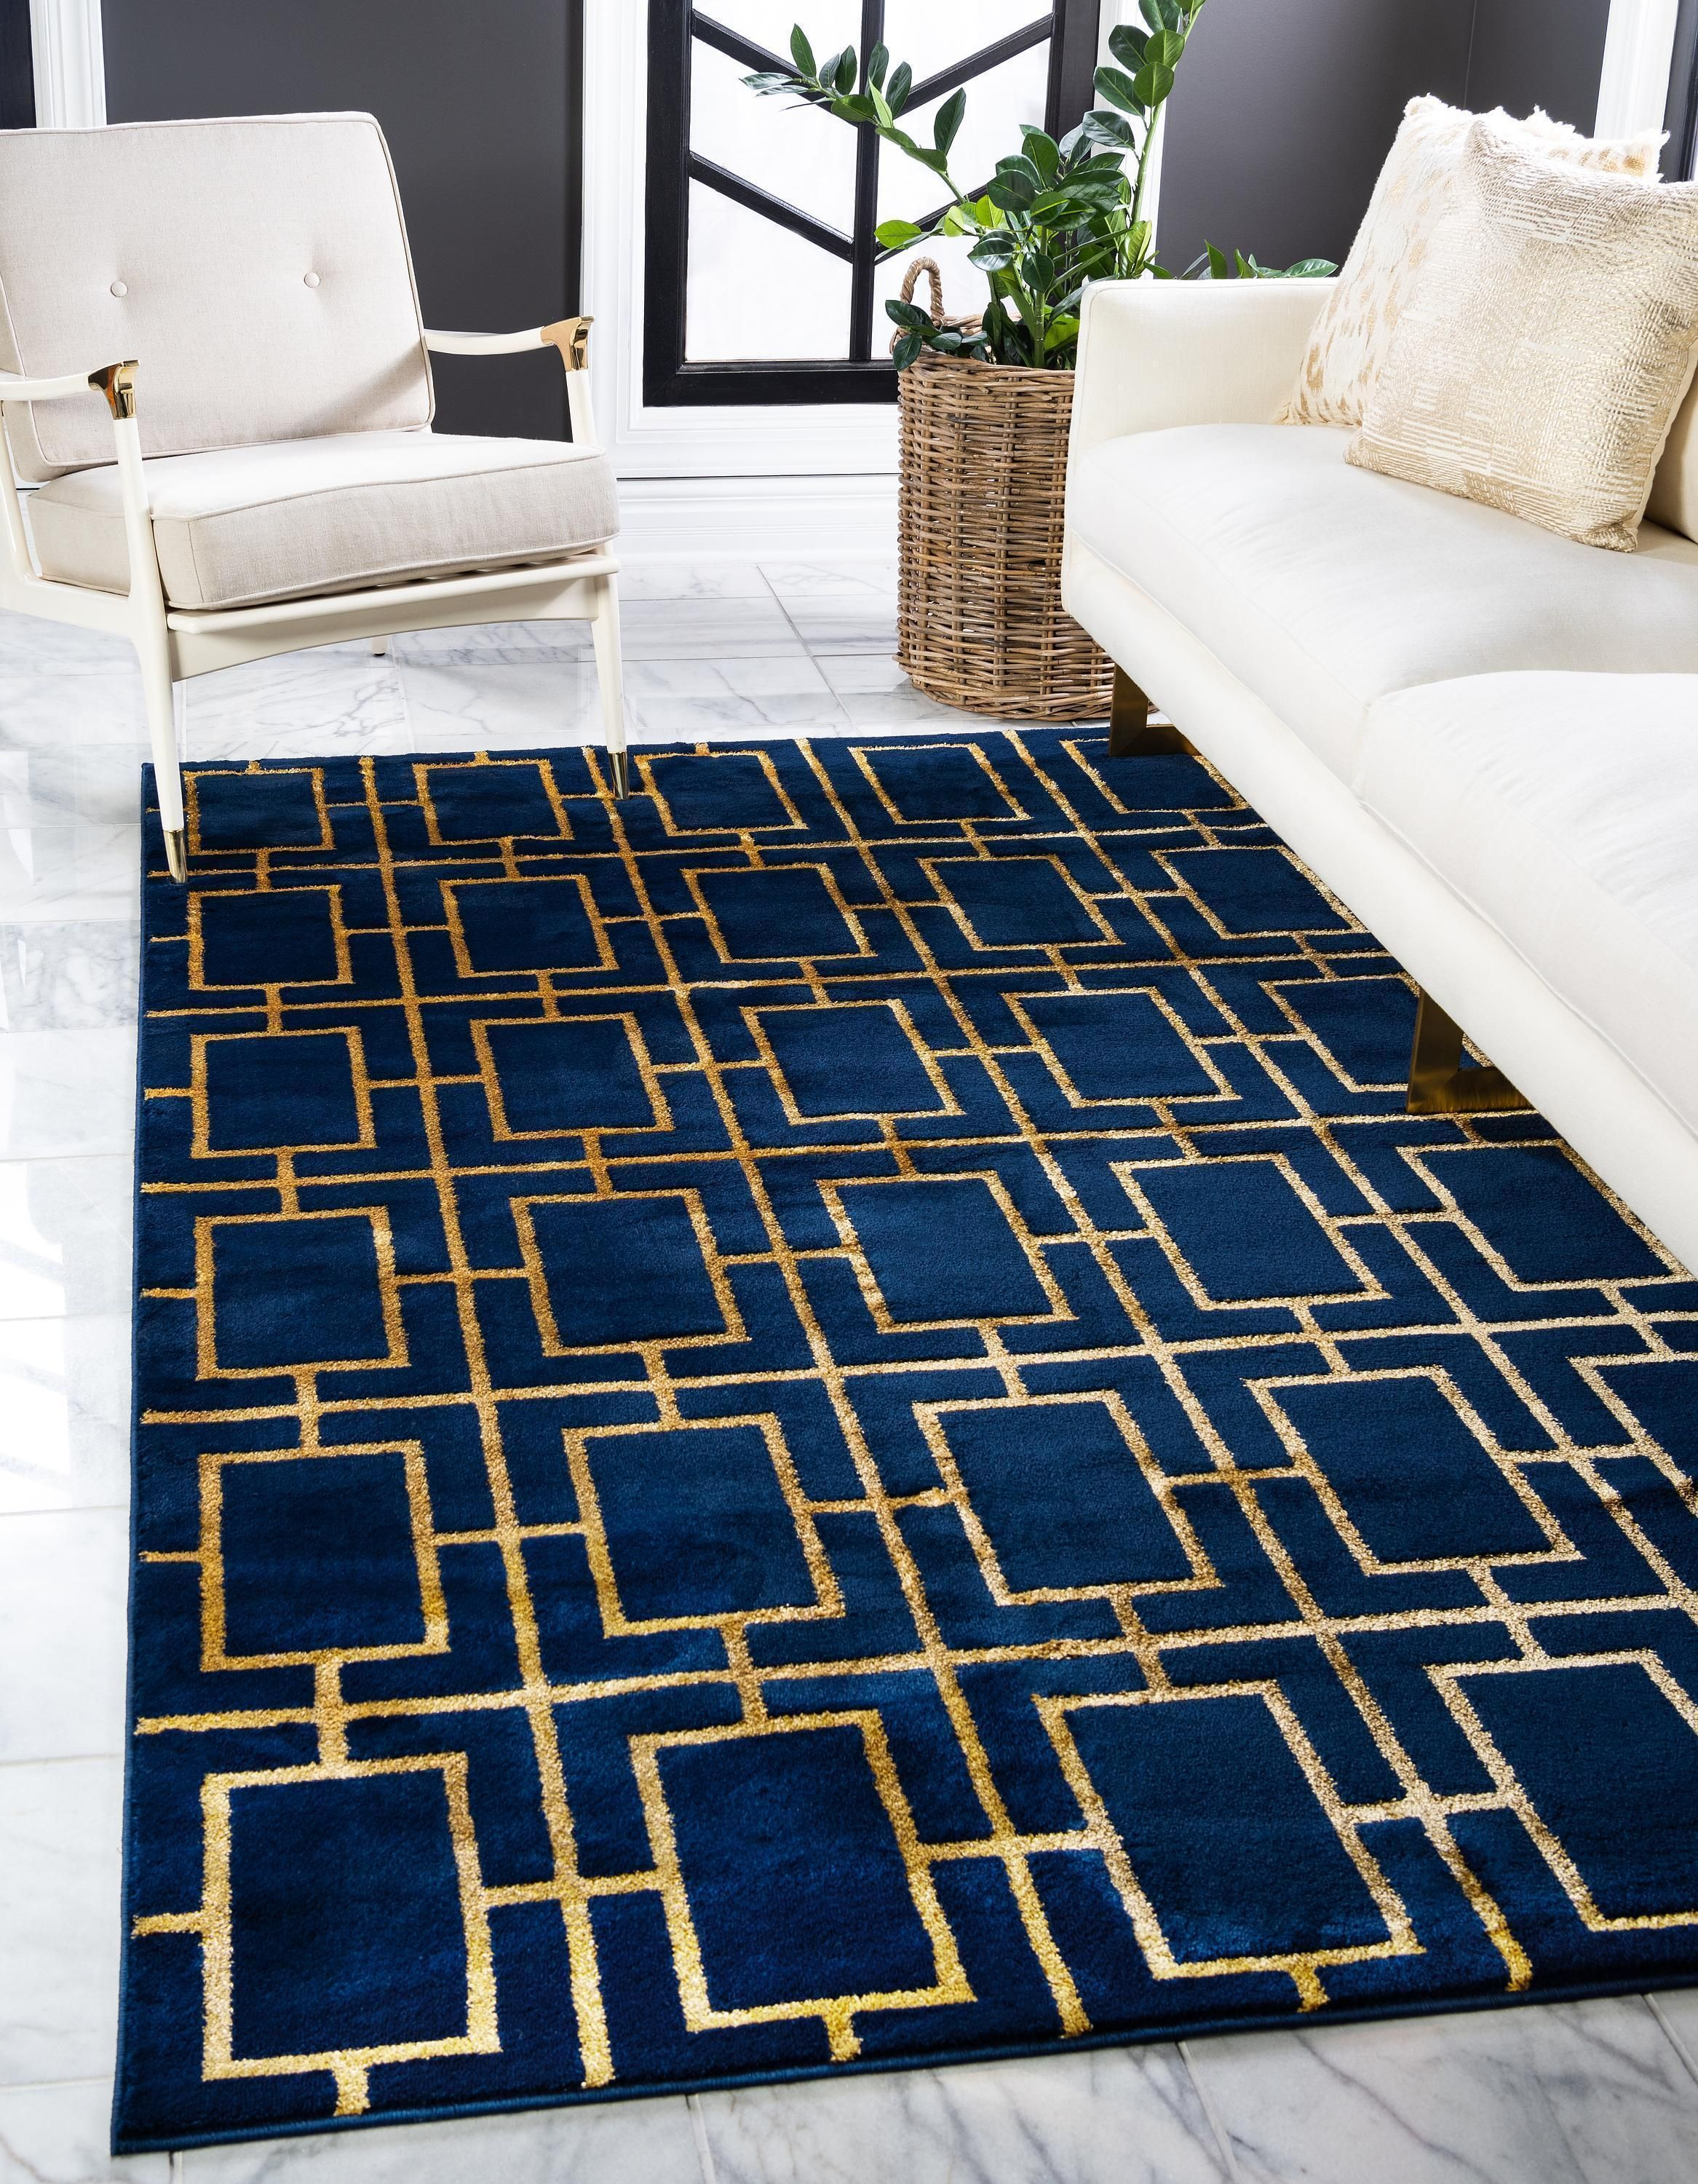 Parker Cube Pattern Luxury Rug In 2021 Blue And Gold Living Room Luxury Rug Gold Living Room